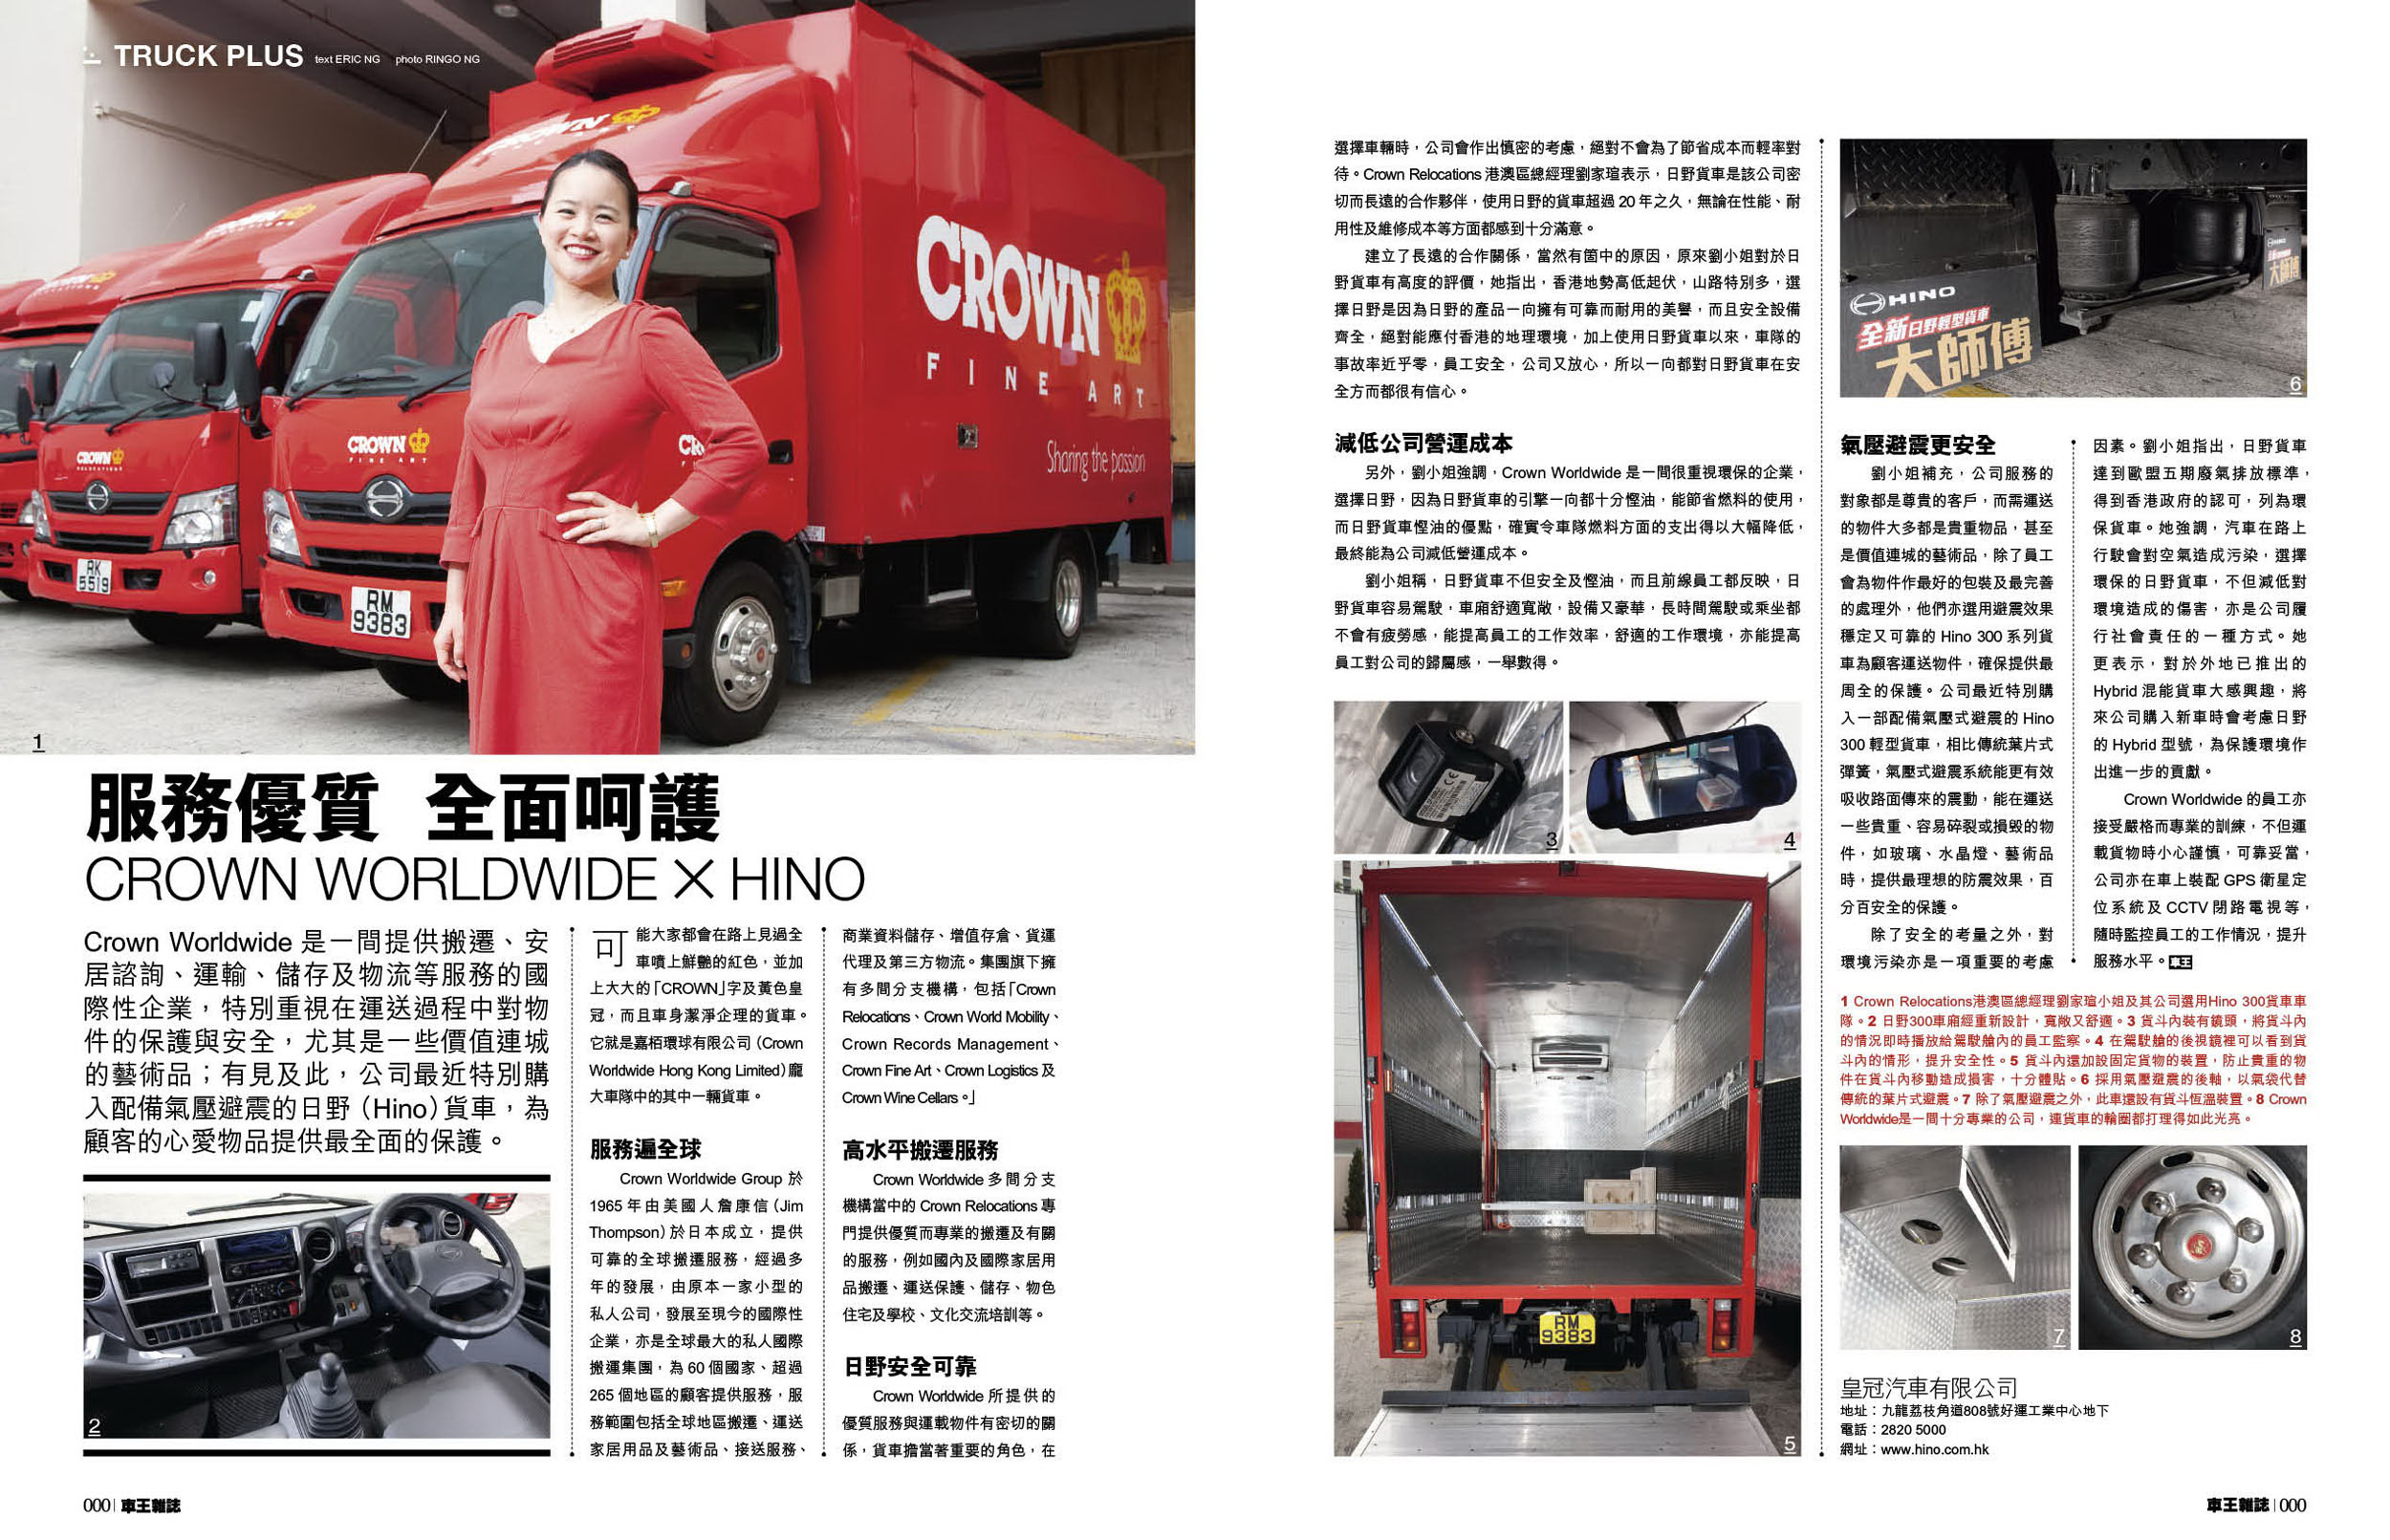 Premium Service with Full Care Crown Worldwide x Hino